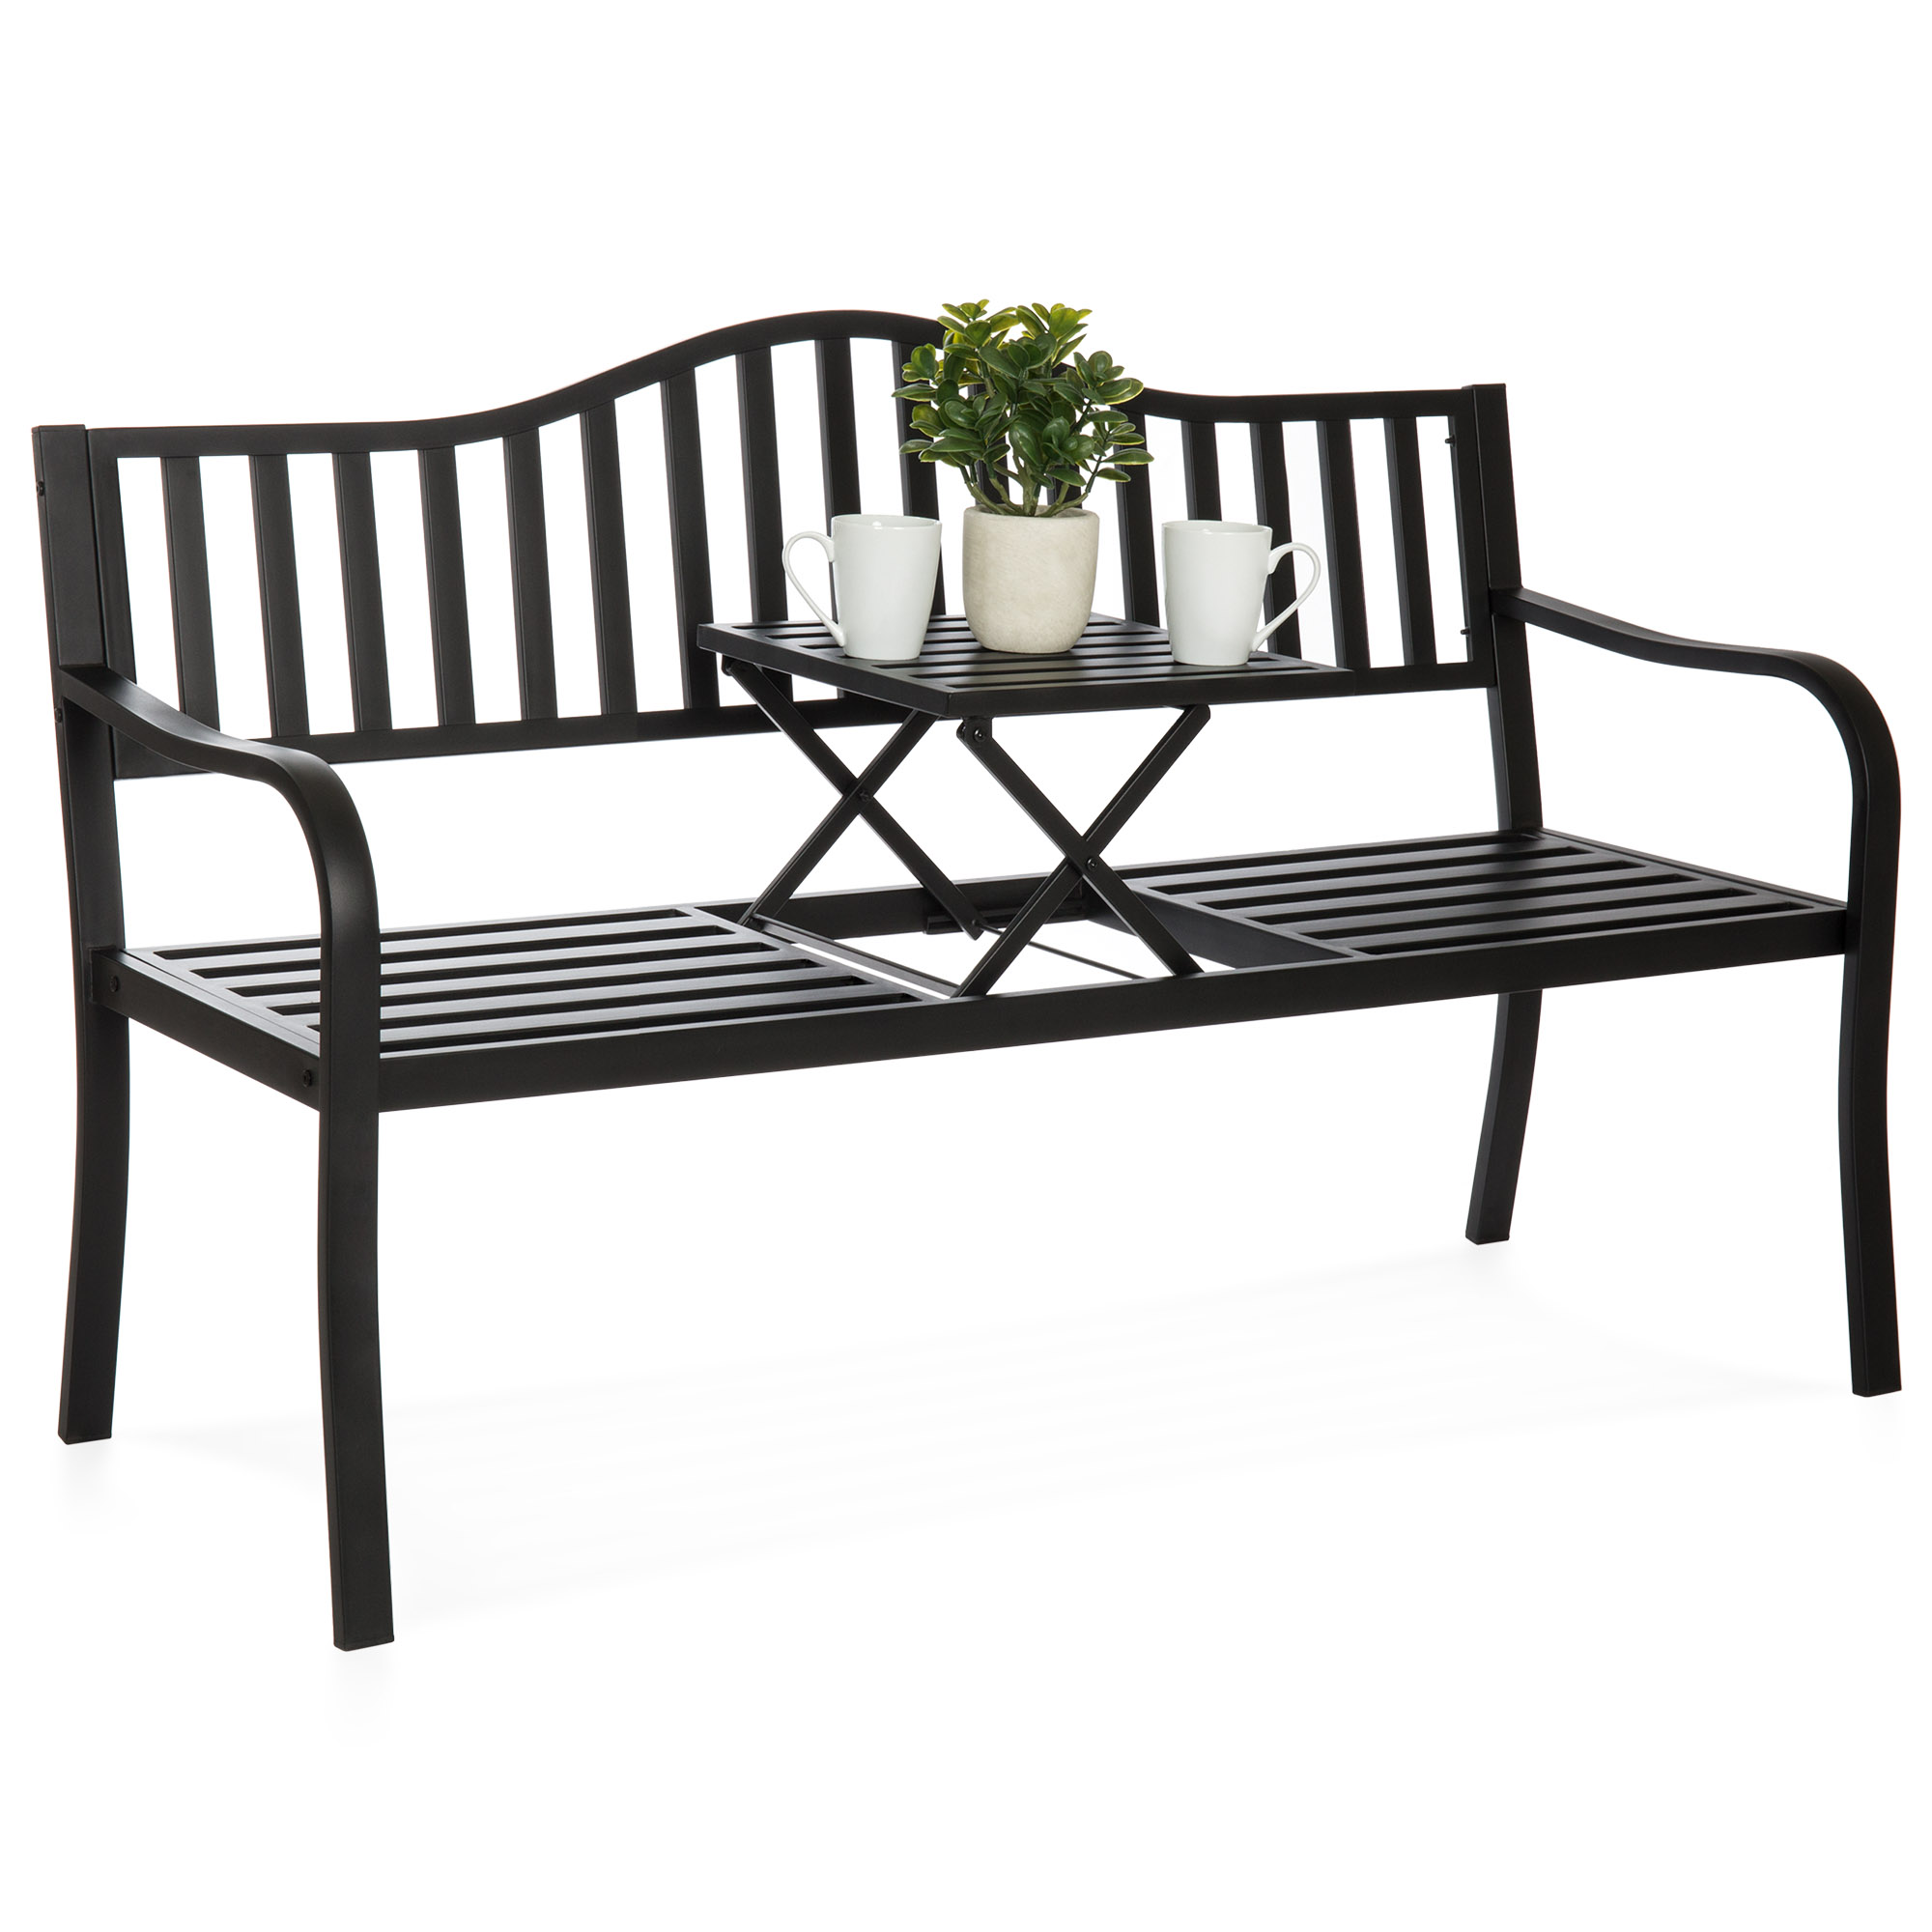 Best Choice Products Cast Iron Patio Garden Double Bench Seat For